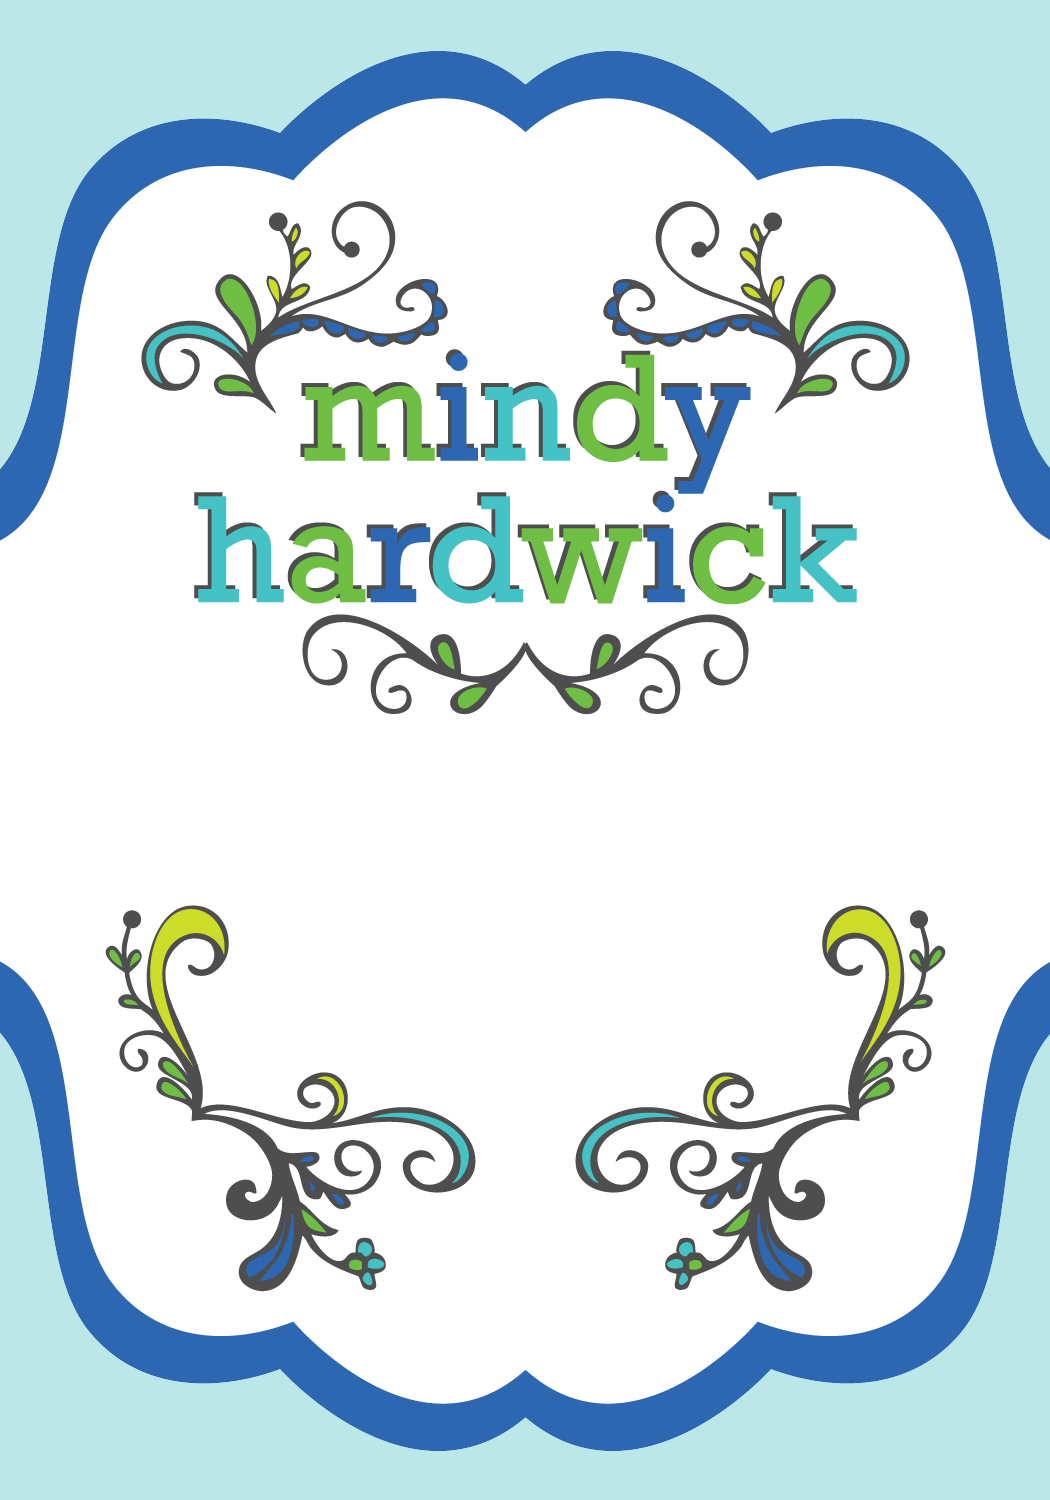 bookplate templates for word - april 2012 mindy hardwick 39 s blog